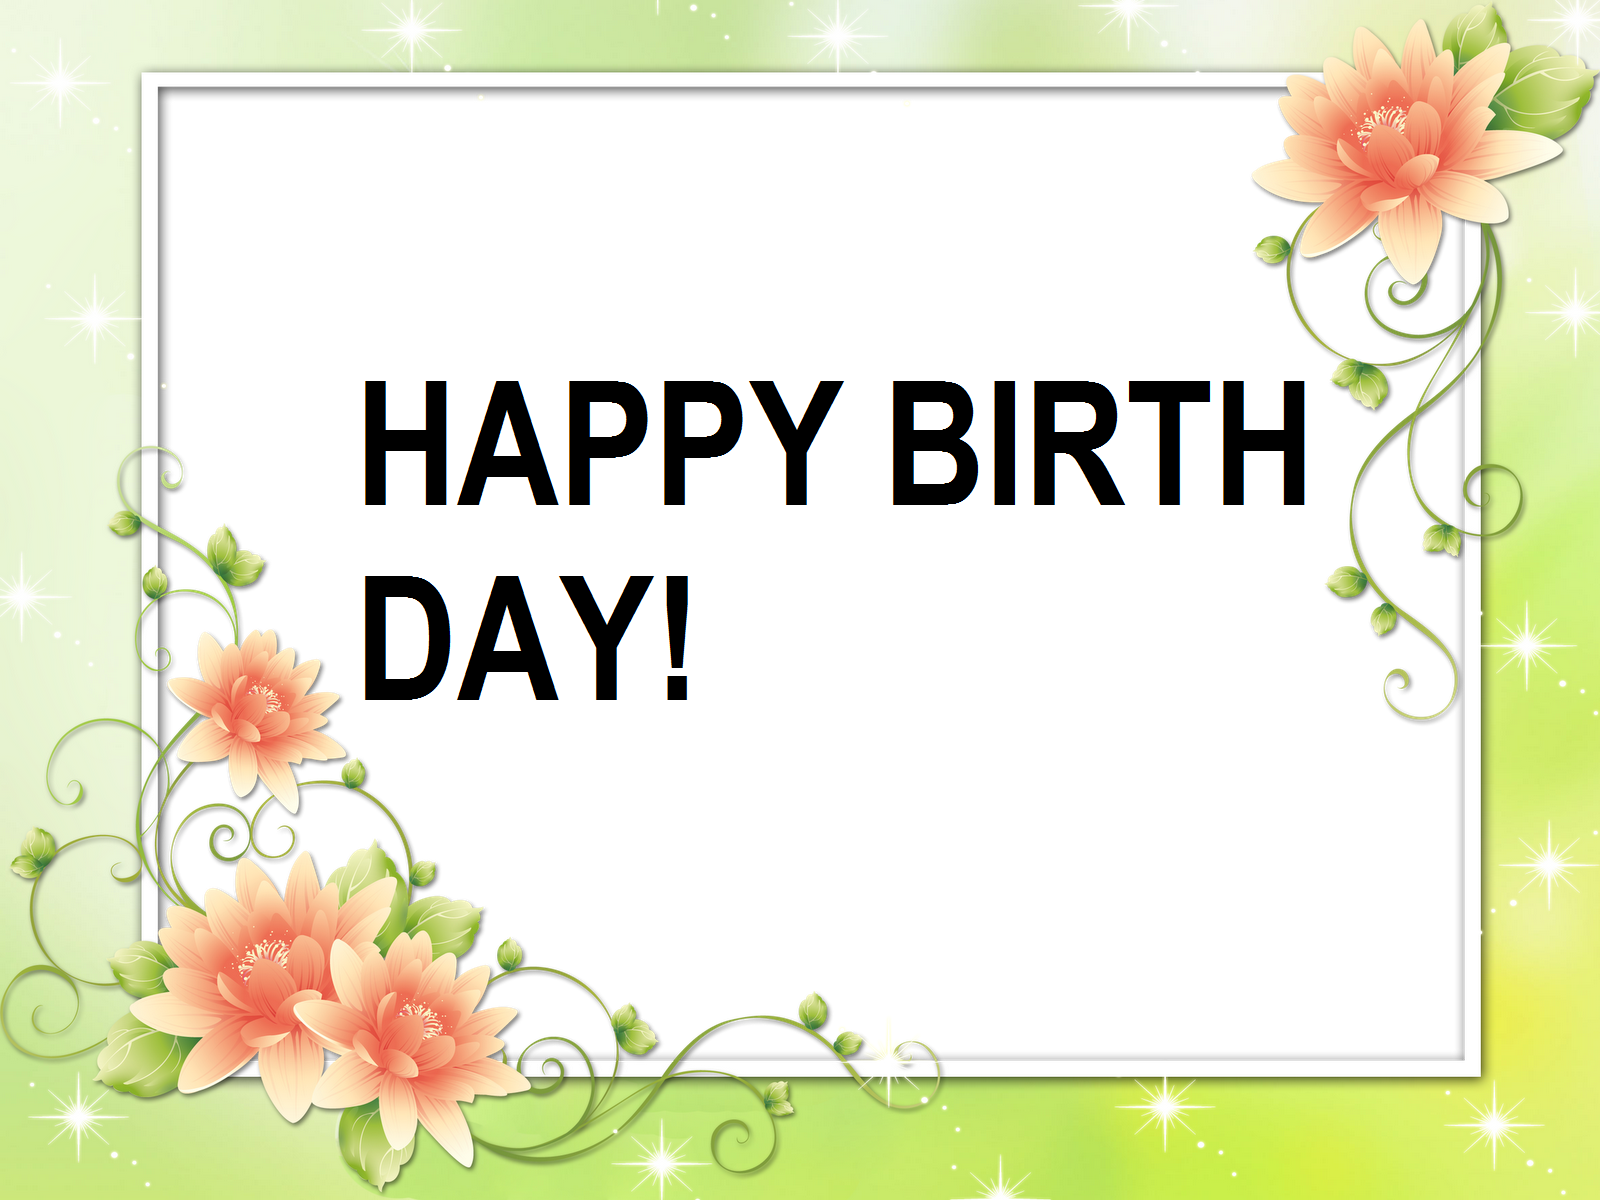 HappyBirthday-images-Photos-Download